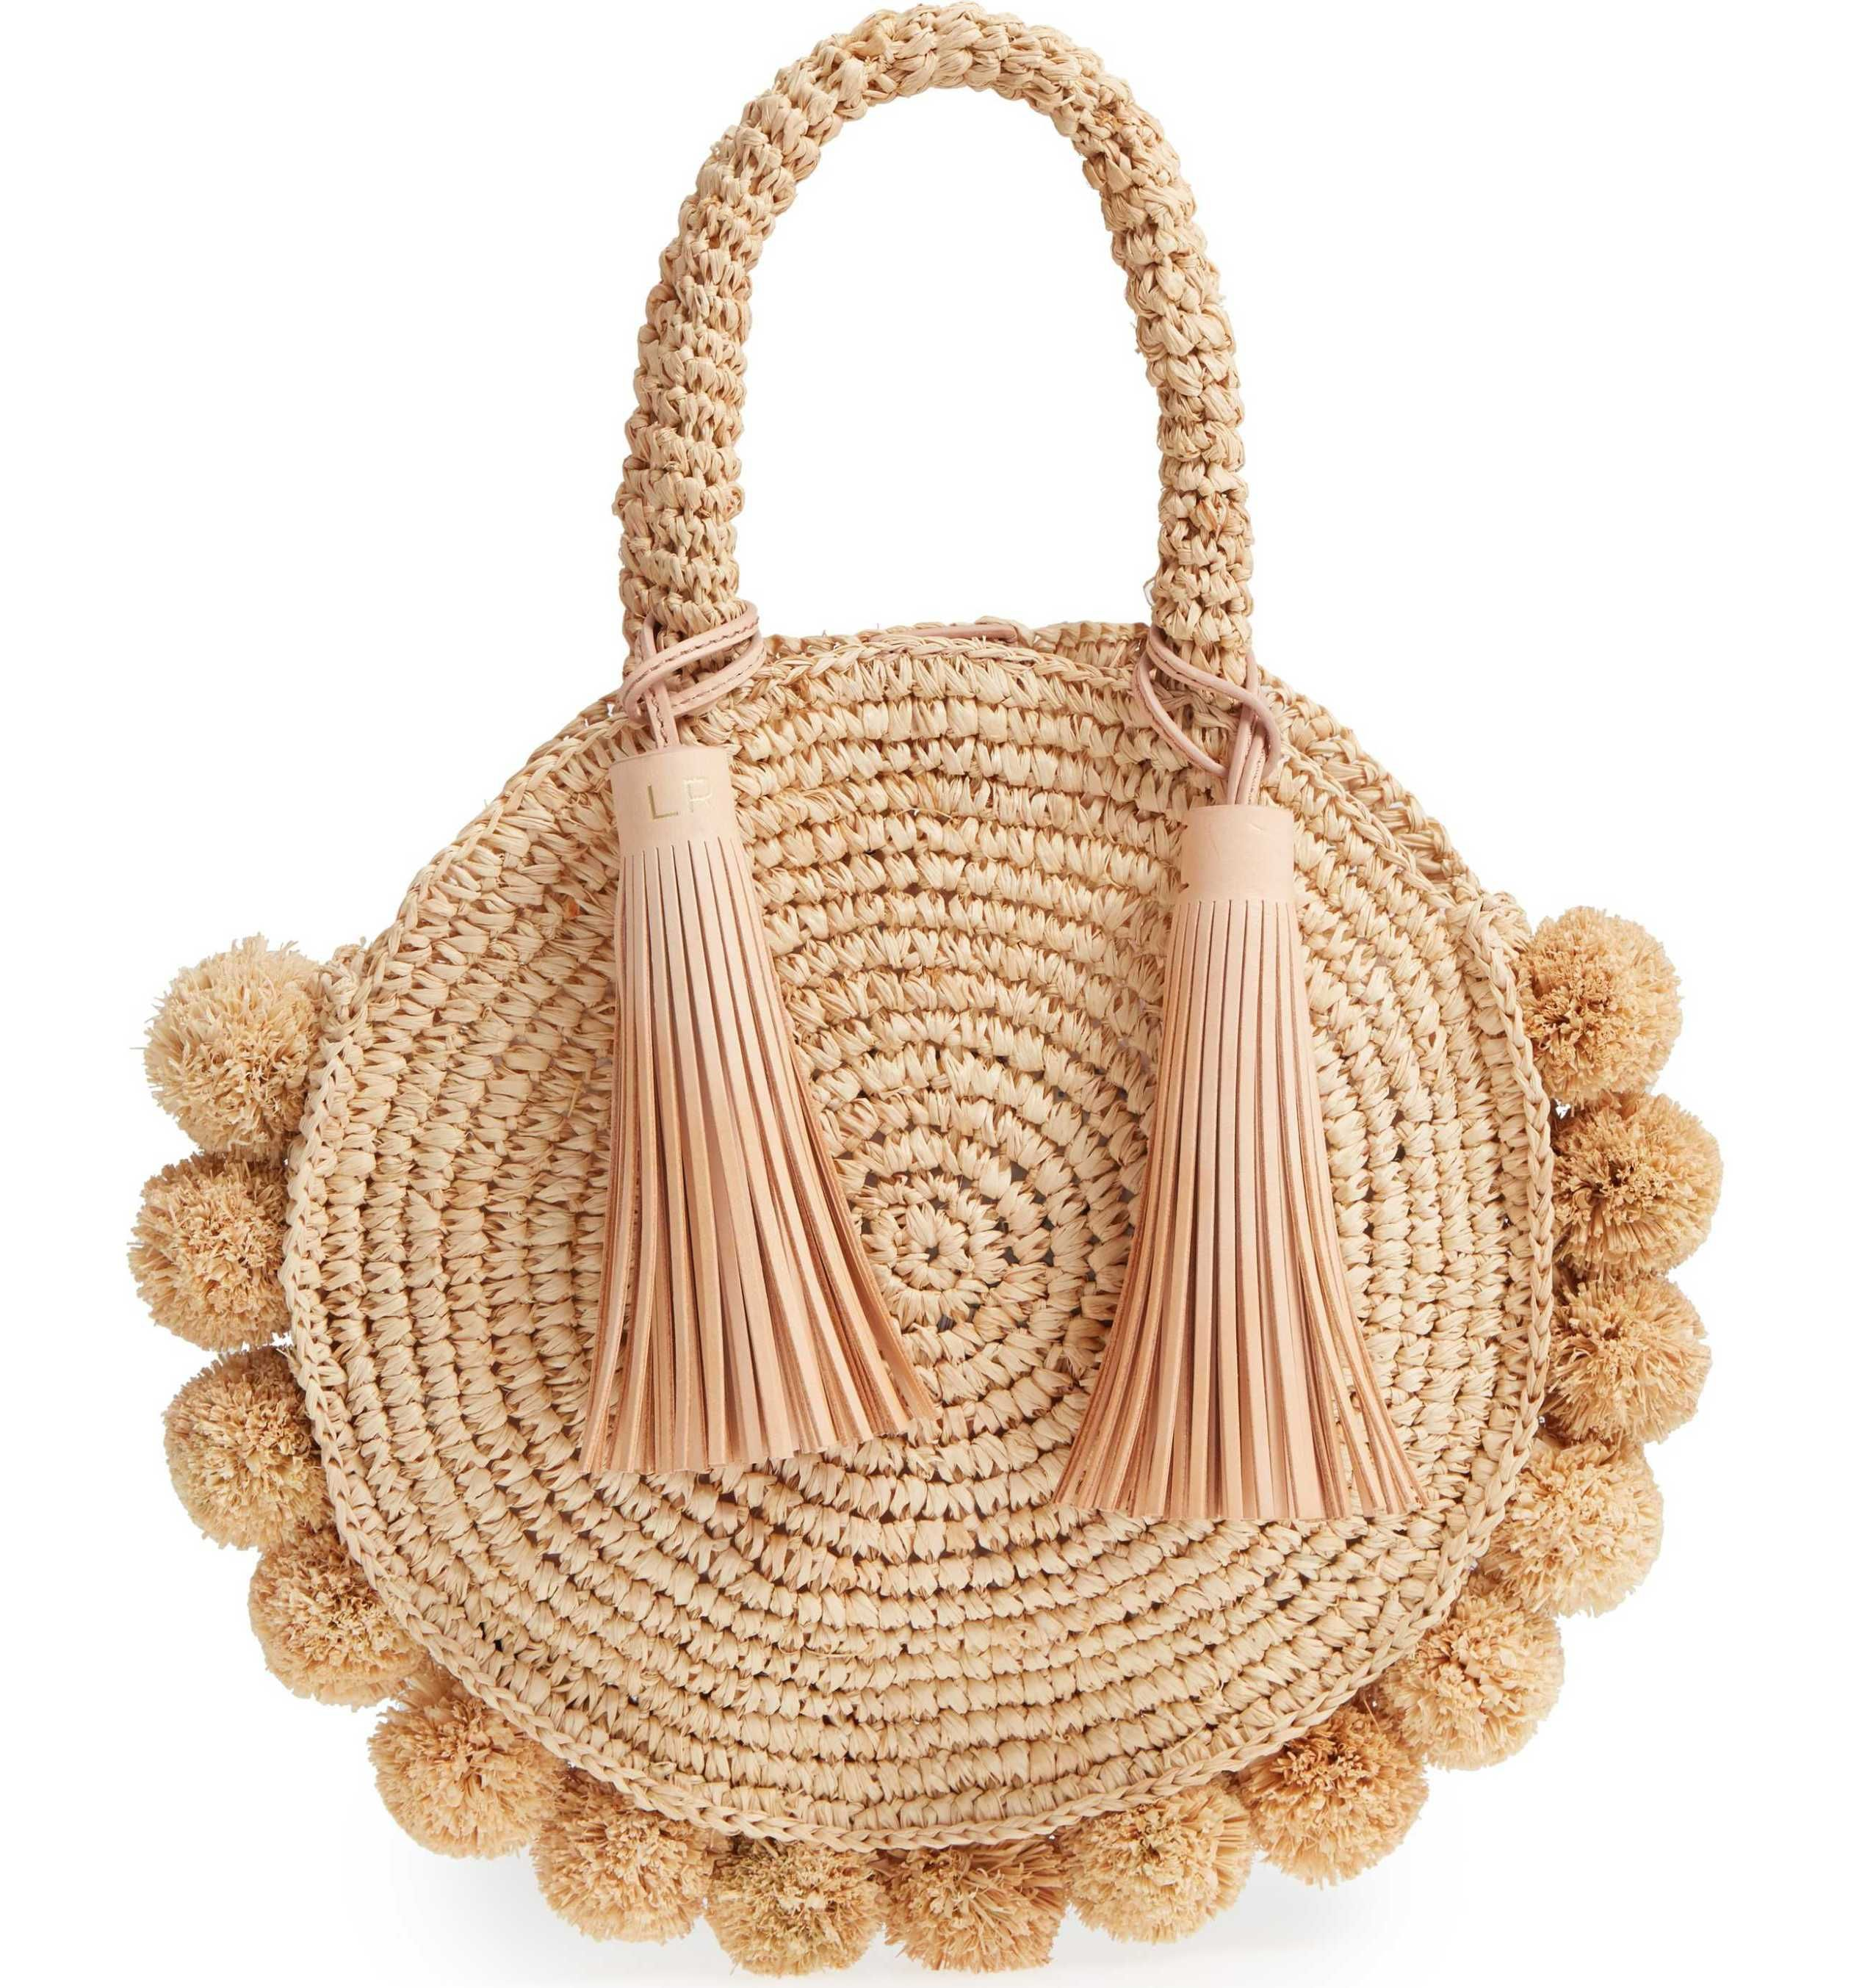 ba80b8c8cdaf6 Spring Must Have Bags and Their Dupes   Keçe   Straw handbags ...